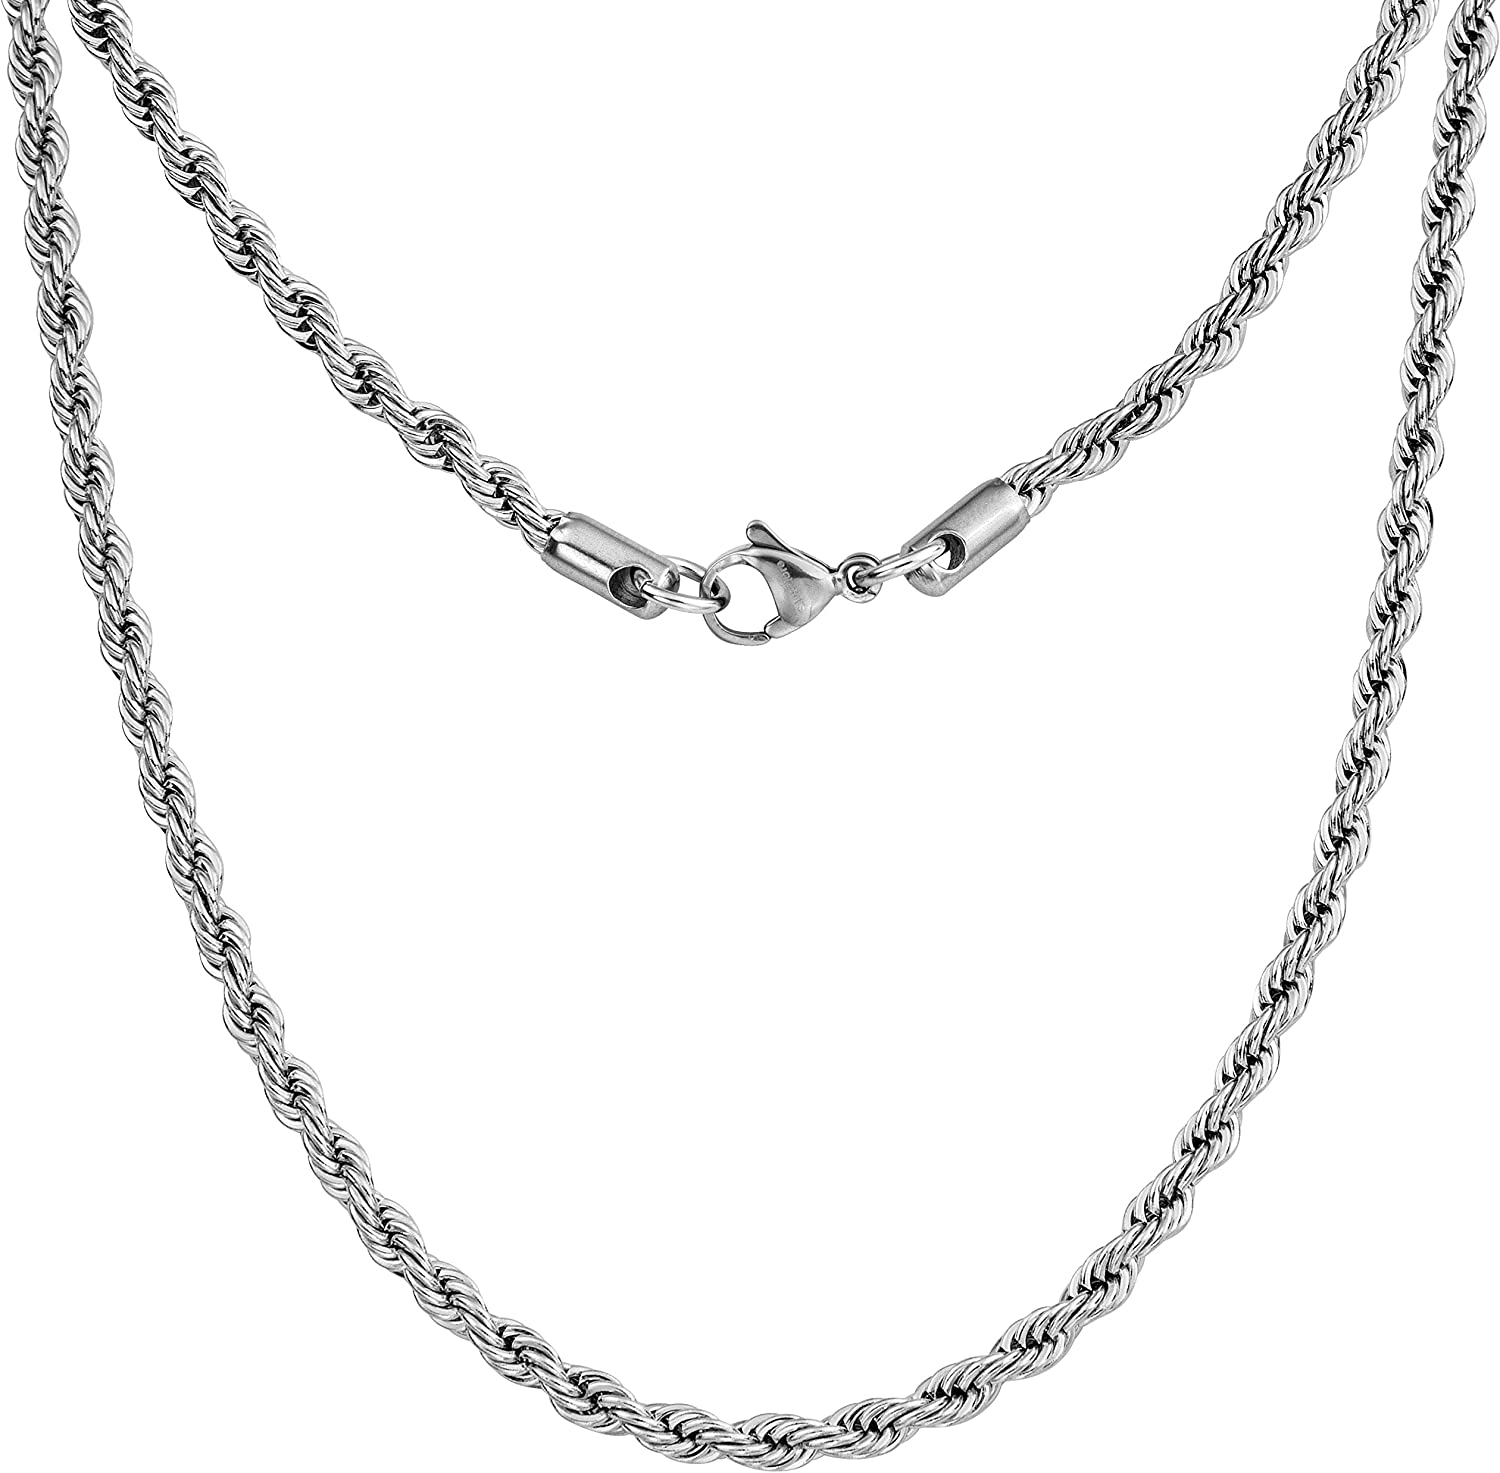 "Silvadore 4mm Rope Mens Necklace - Silver Chain Twist Stainless Steel Jewelry - Neck Link Chains for Men Man Male Women Boys Girls - 18"" 20"" 22"" 24"" 26"" 36"" UK"